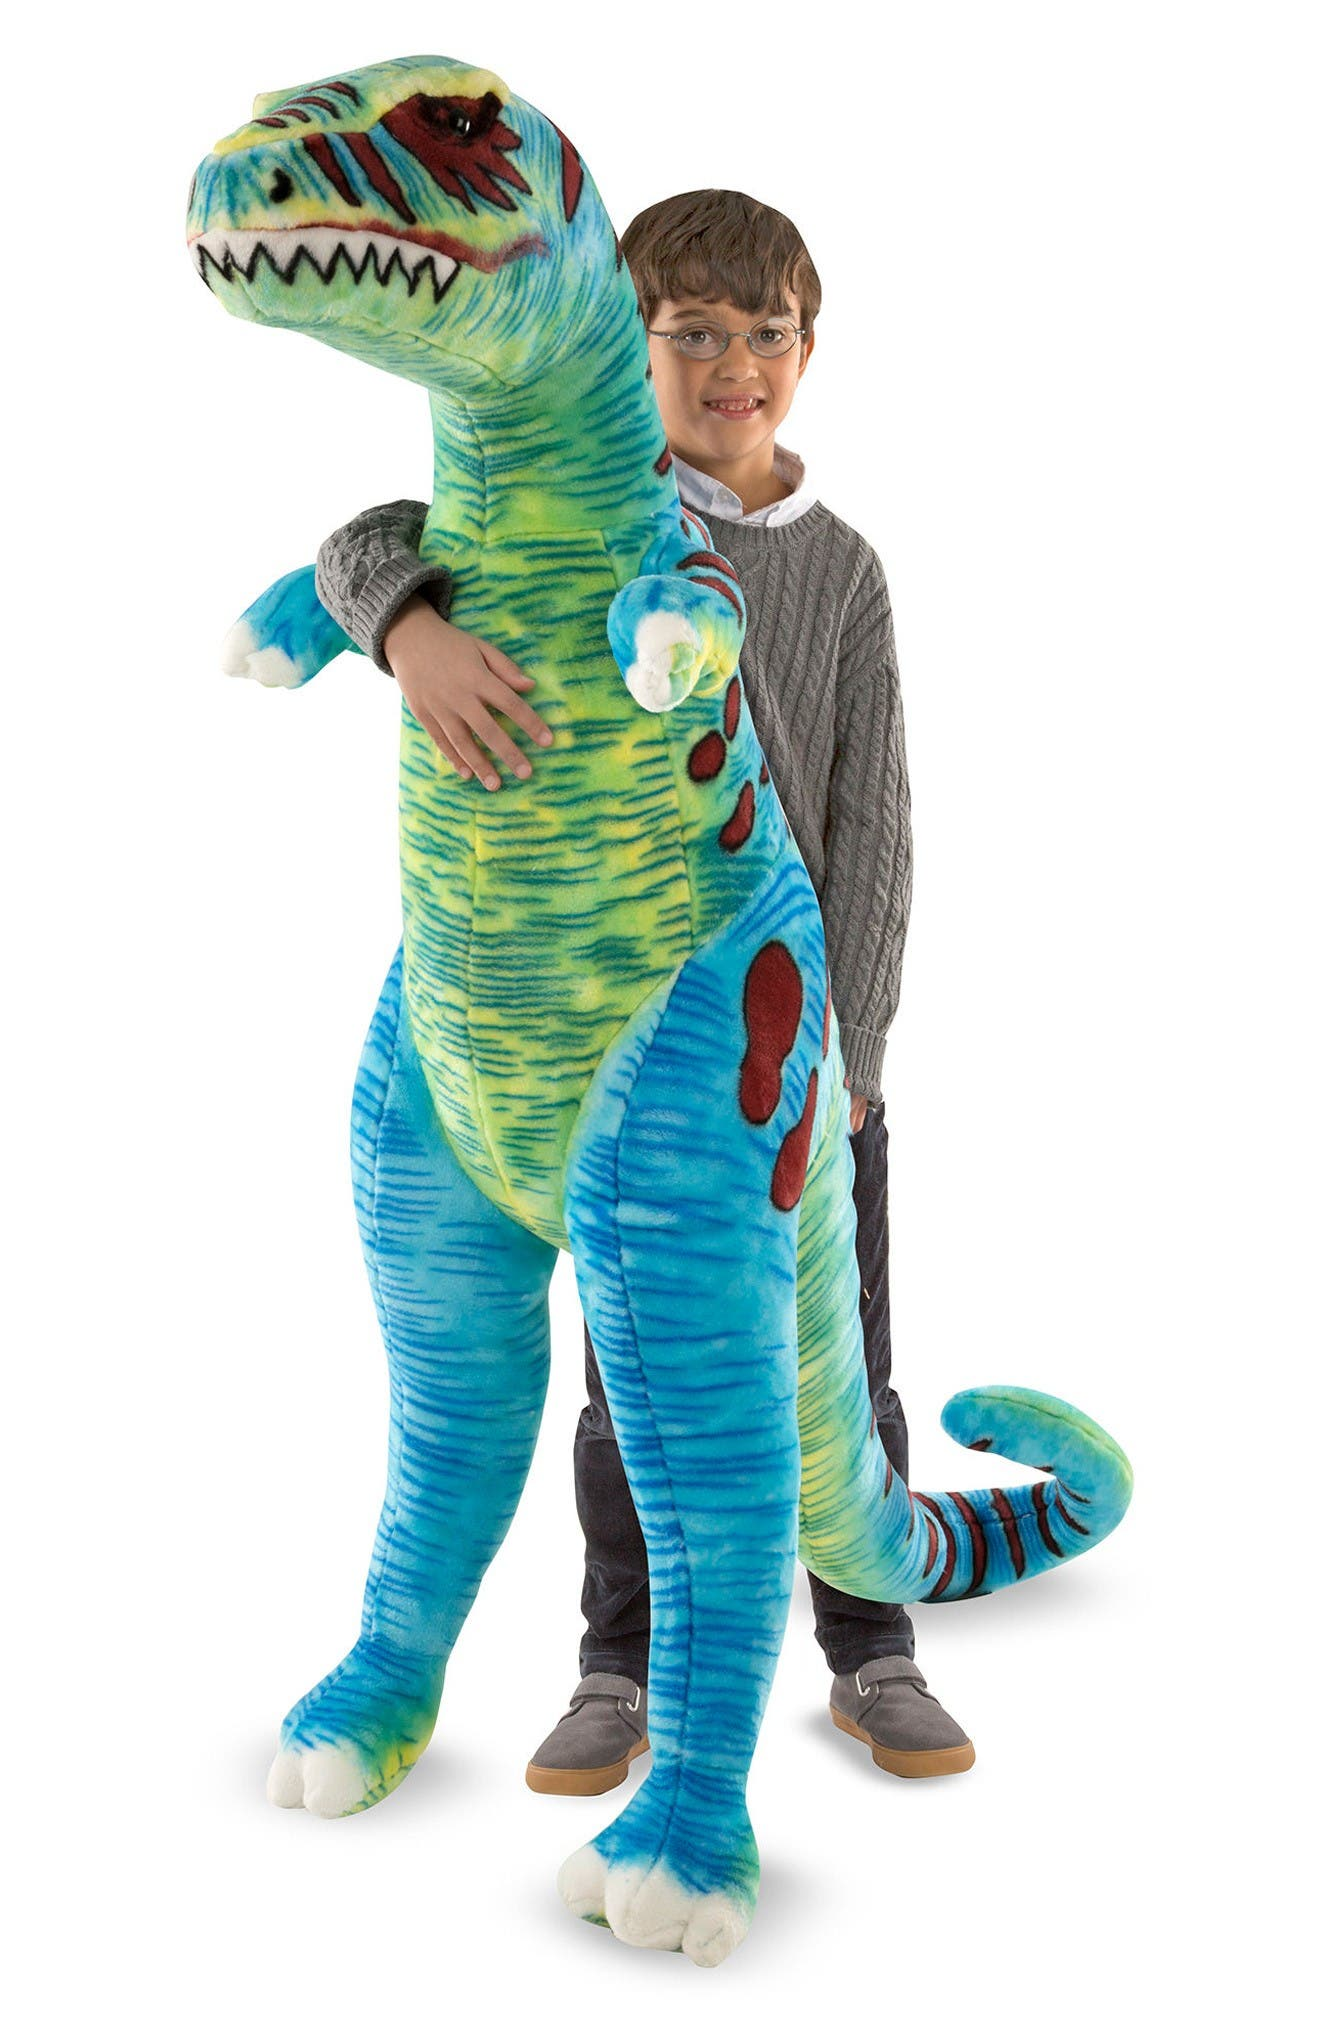 Alternate Image 1 Selected - Melissa & Doug Giant T-Rex Plush